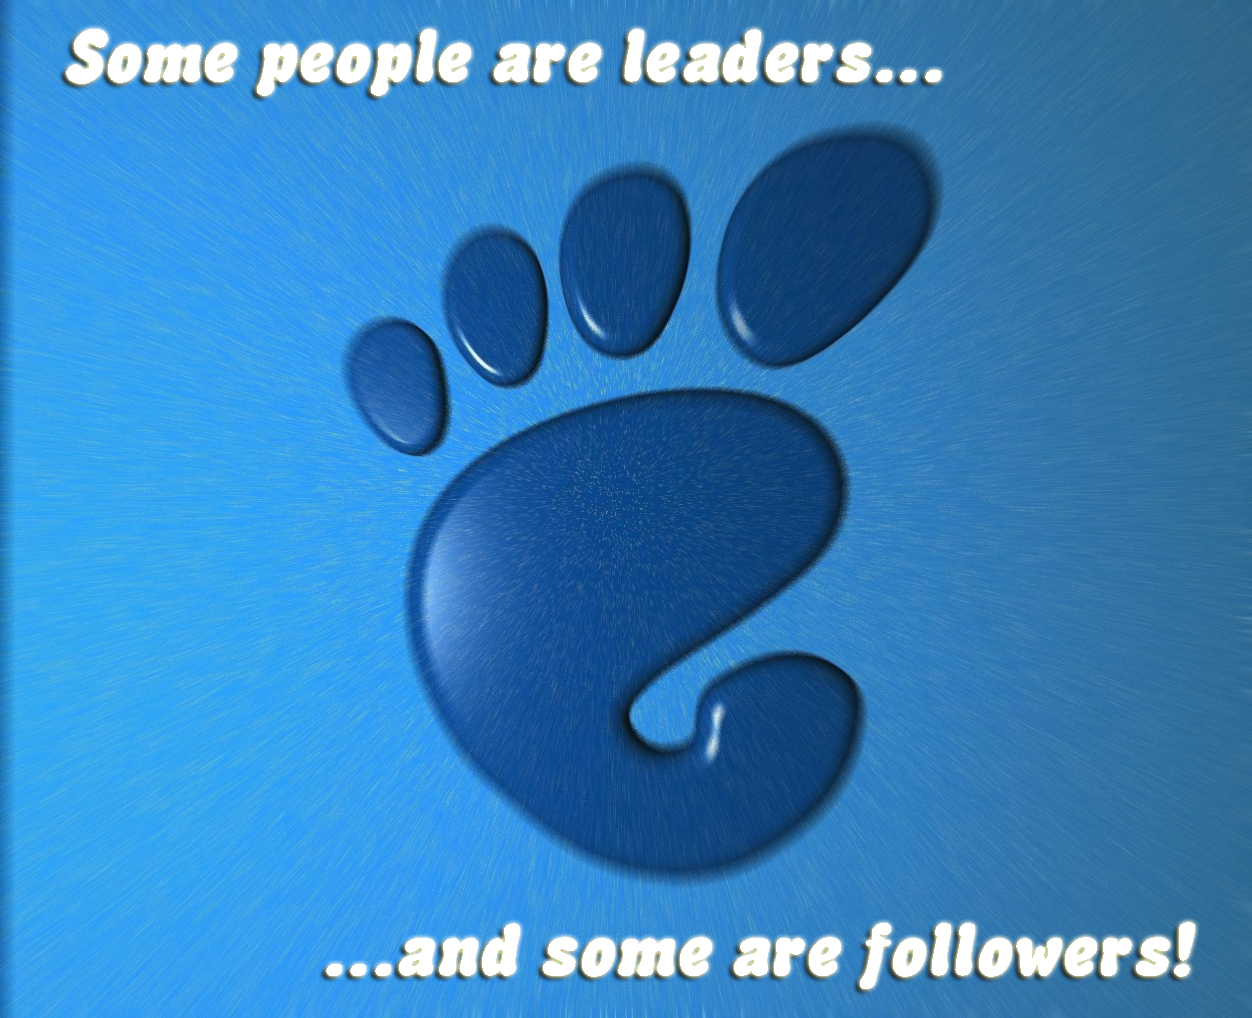 Followers quote #1